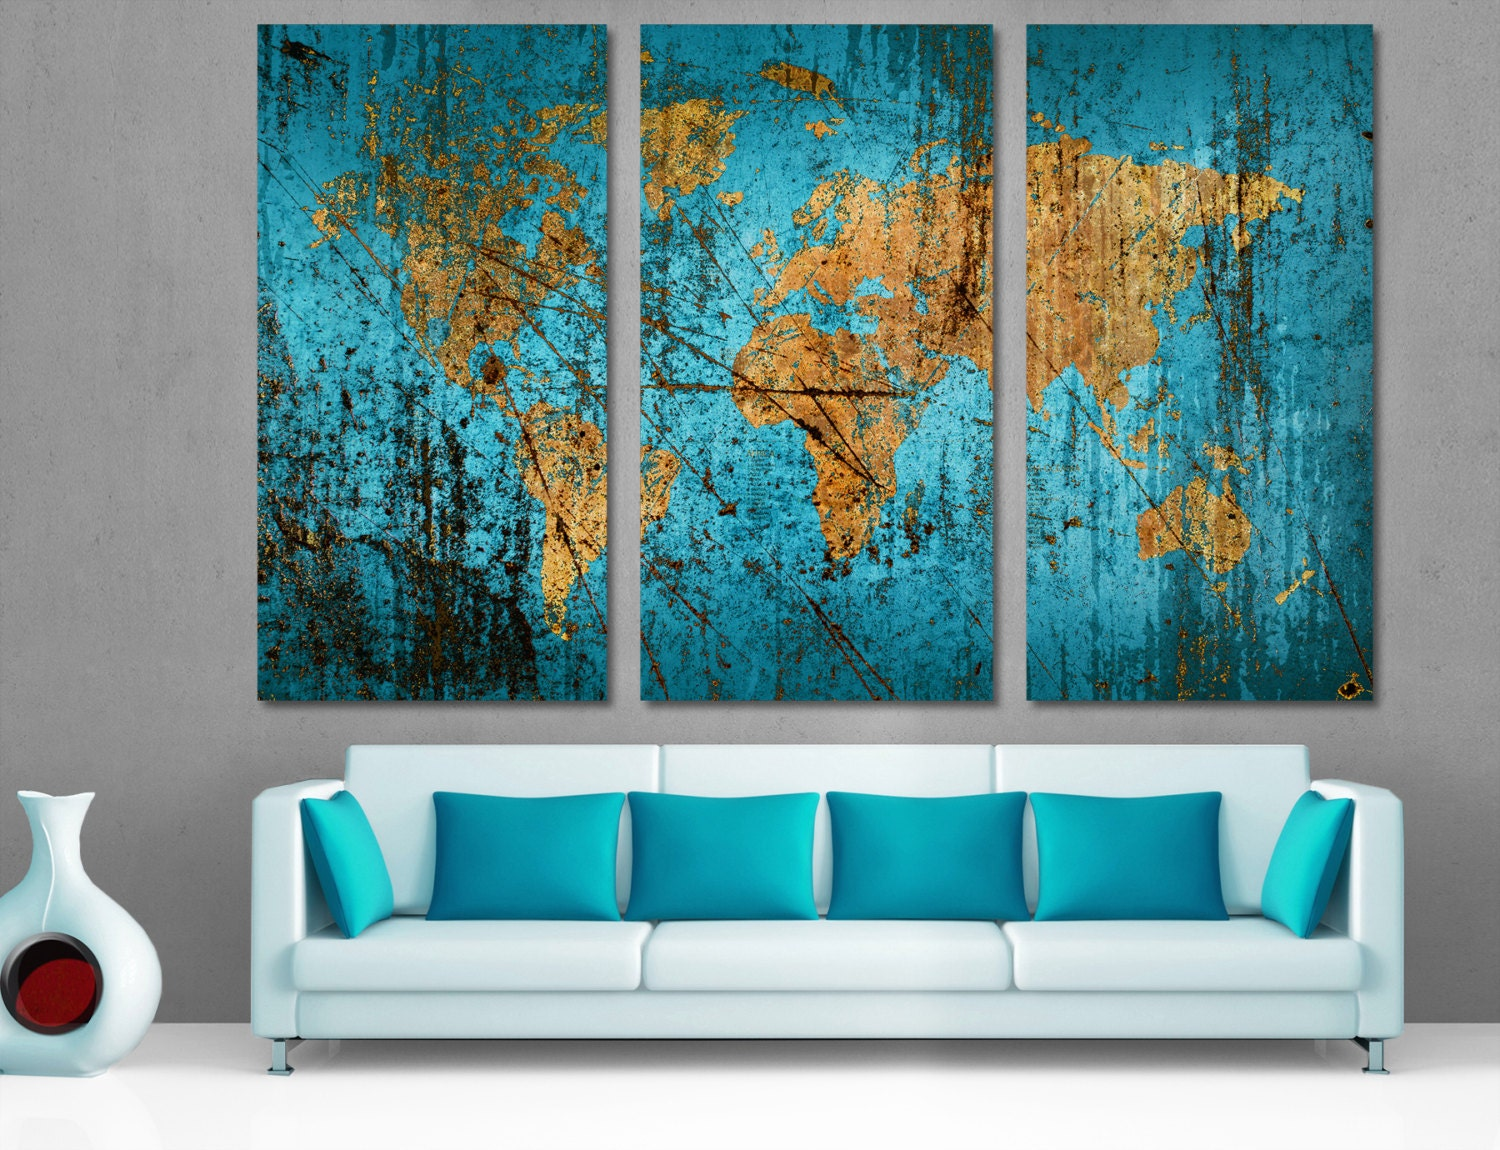 Munsell Blue World Map Canvas Print 3 Panel Split, Triptych Abstract Wall Art For home living room wall decor, interior design. Multi Panel.